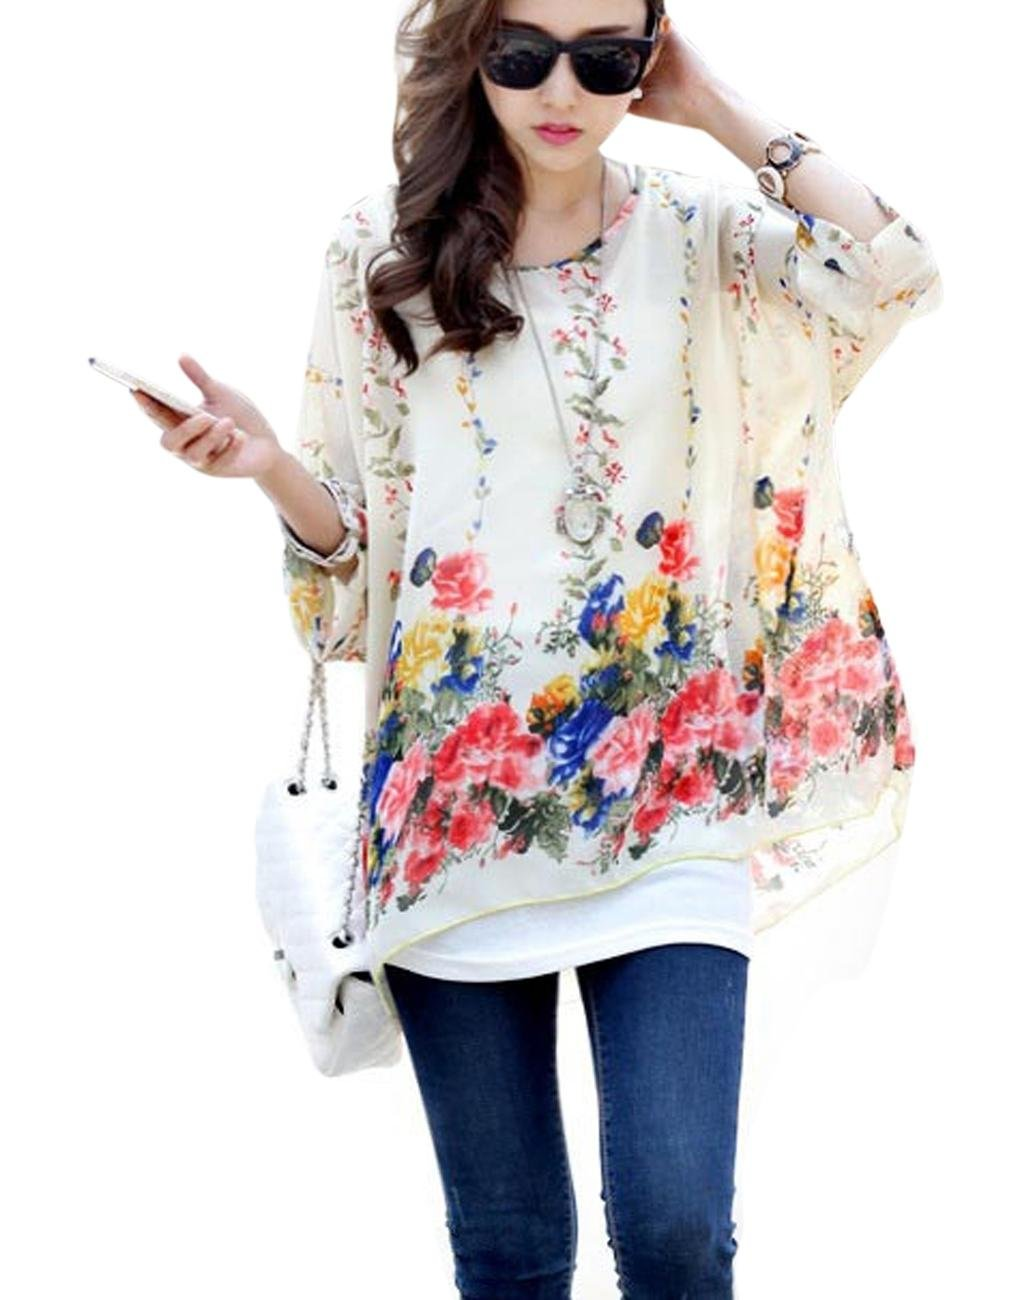 LY Womens Loose Casual Batwing Sleeve Chiffon Shirt BOHO Style Tops Blouse, Multi1, One Size fits most